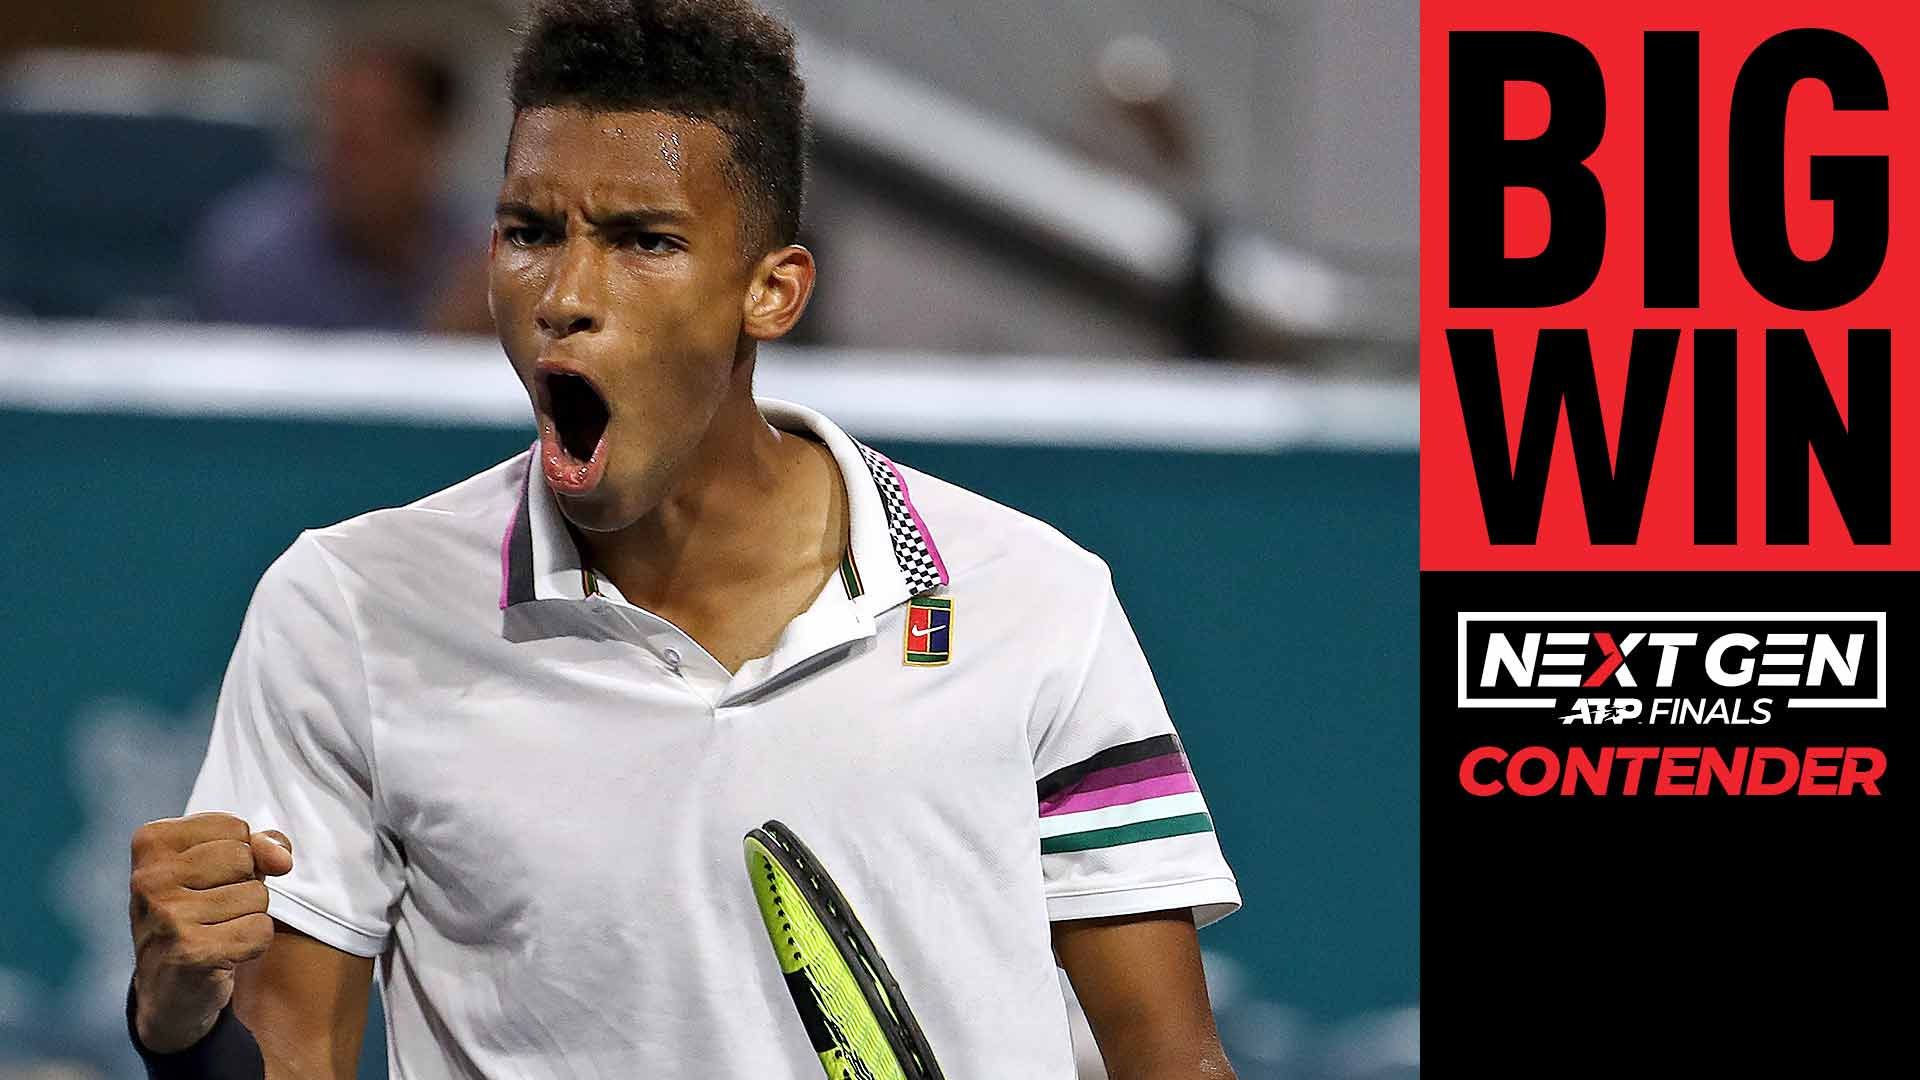 Felix Auger-Aliassime beats Borna Coric on Wednesday in Miami